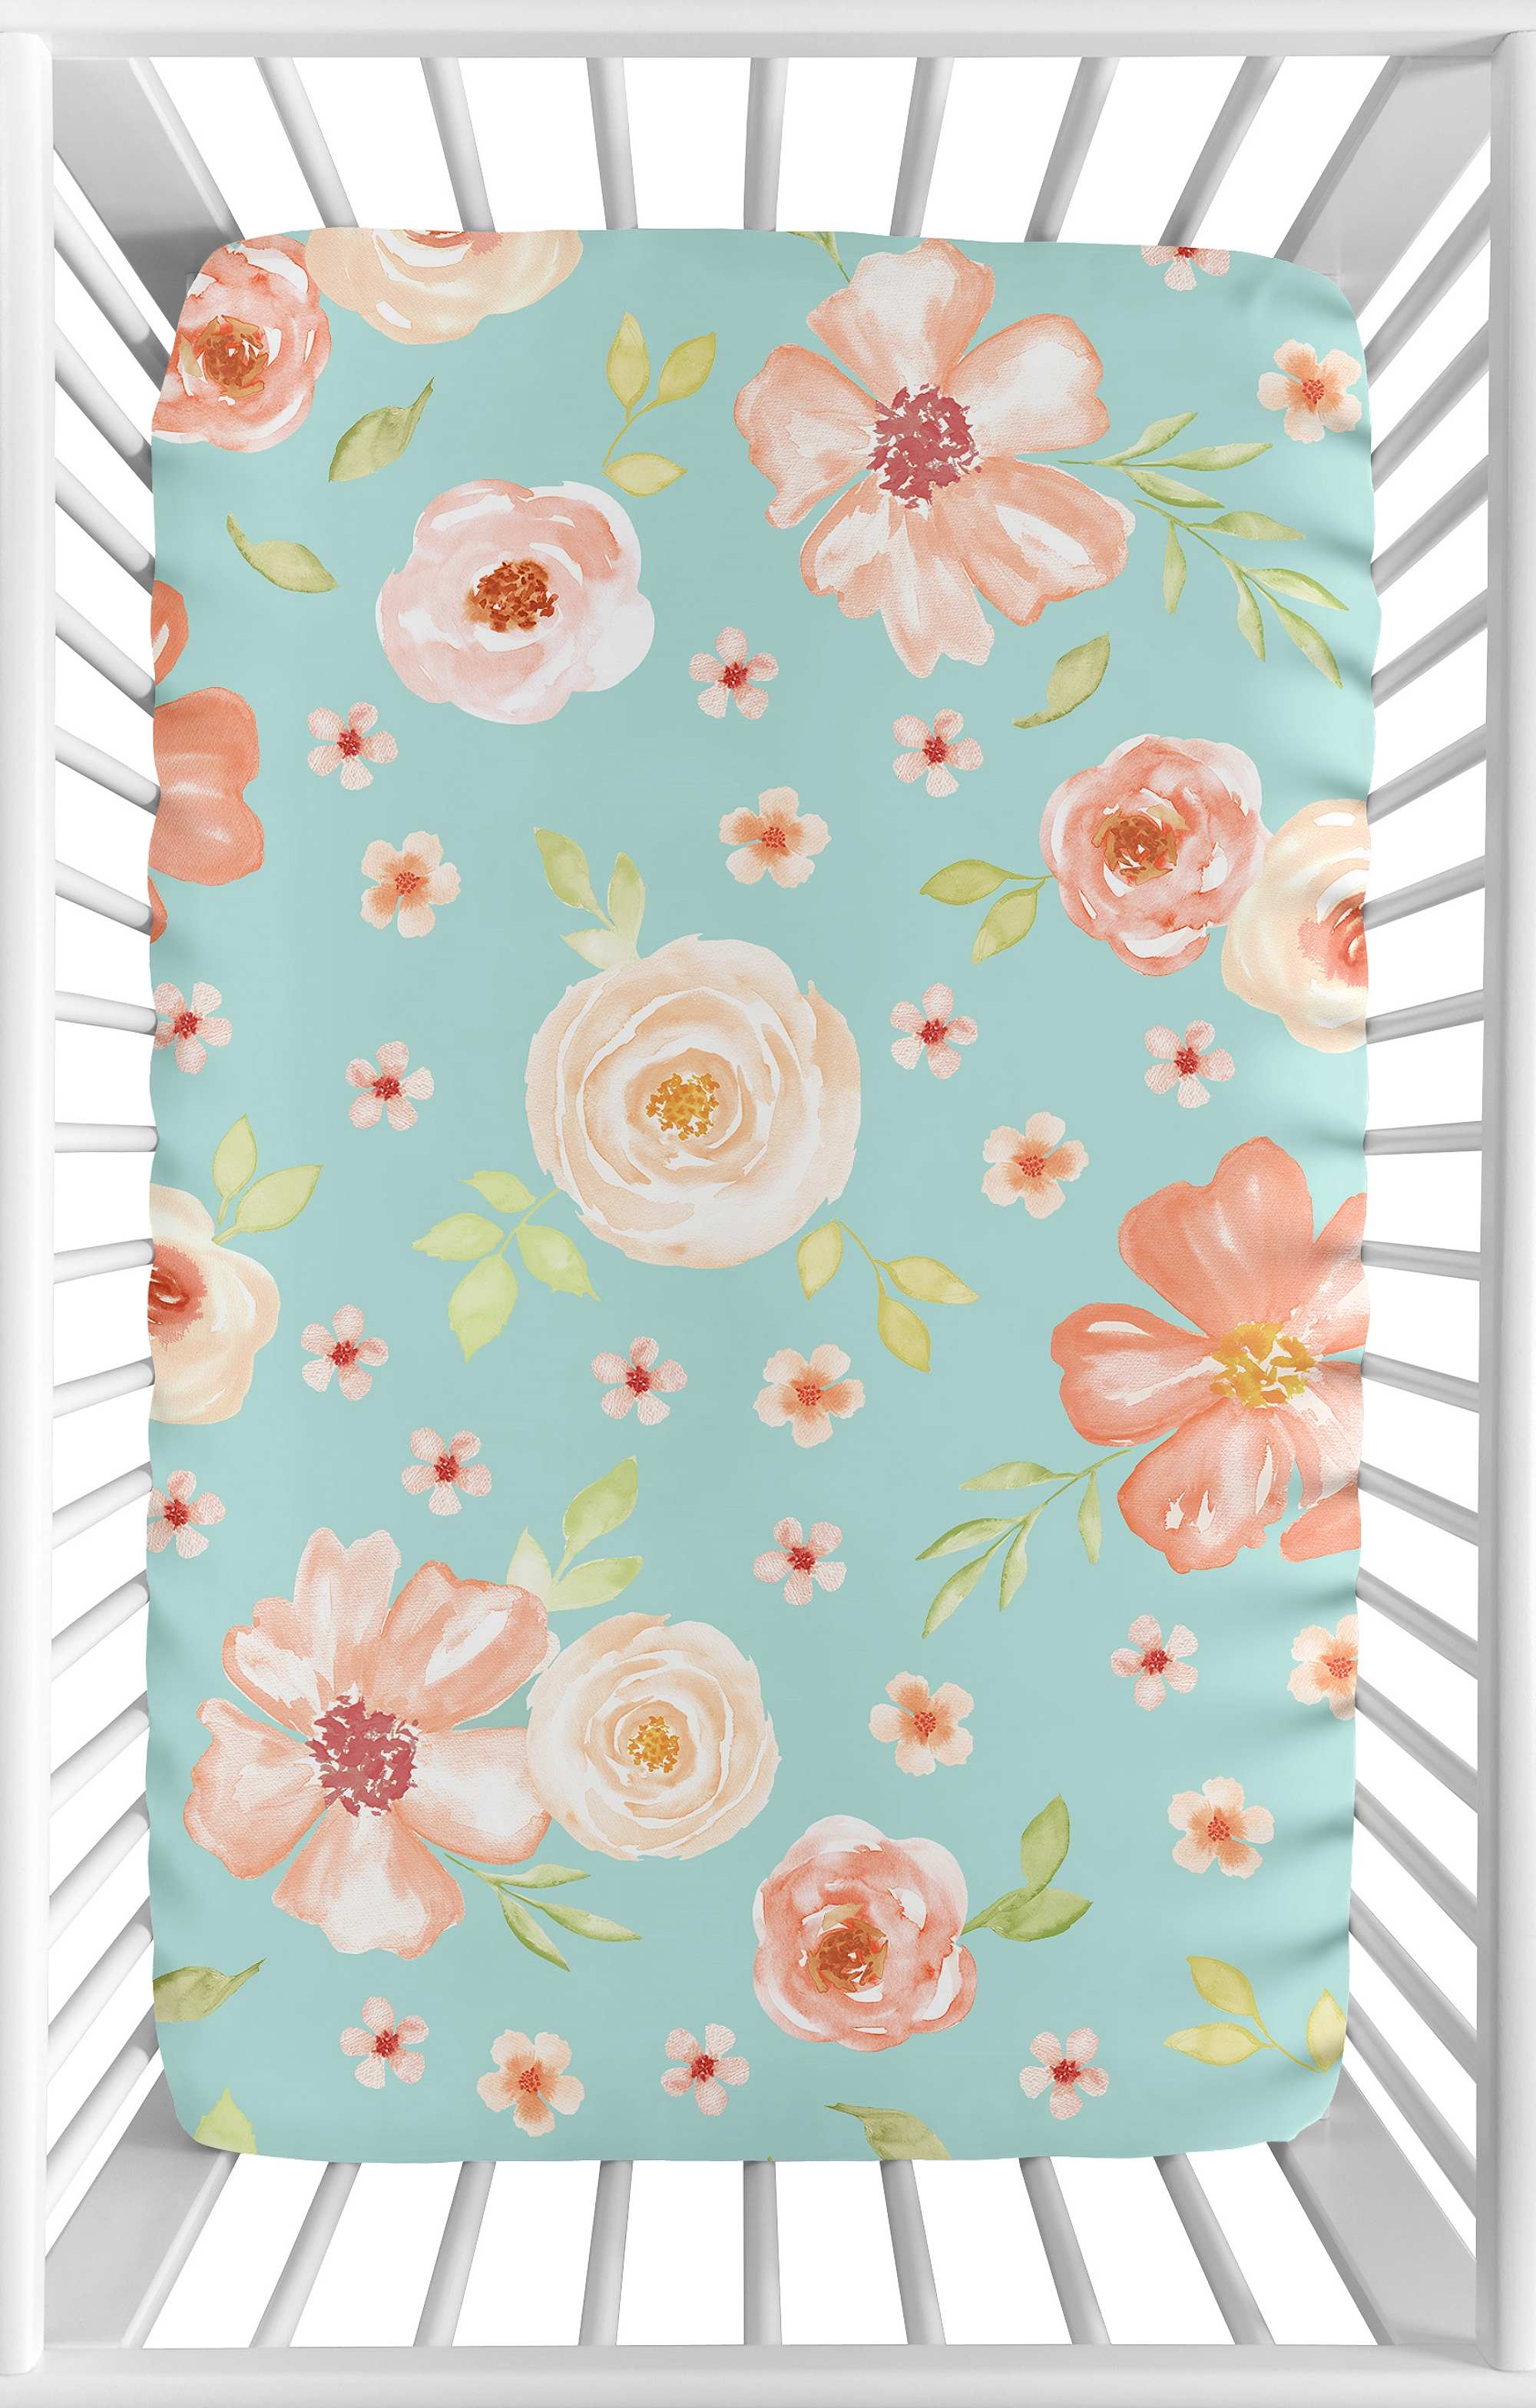 Coral and Turquoise Baby Fitted Mini Portable Crib Sheet for Feather Bedding